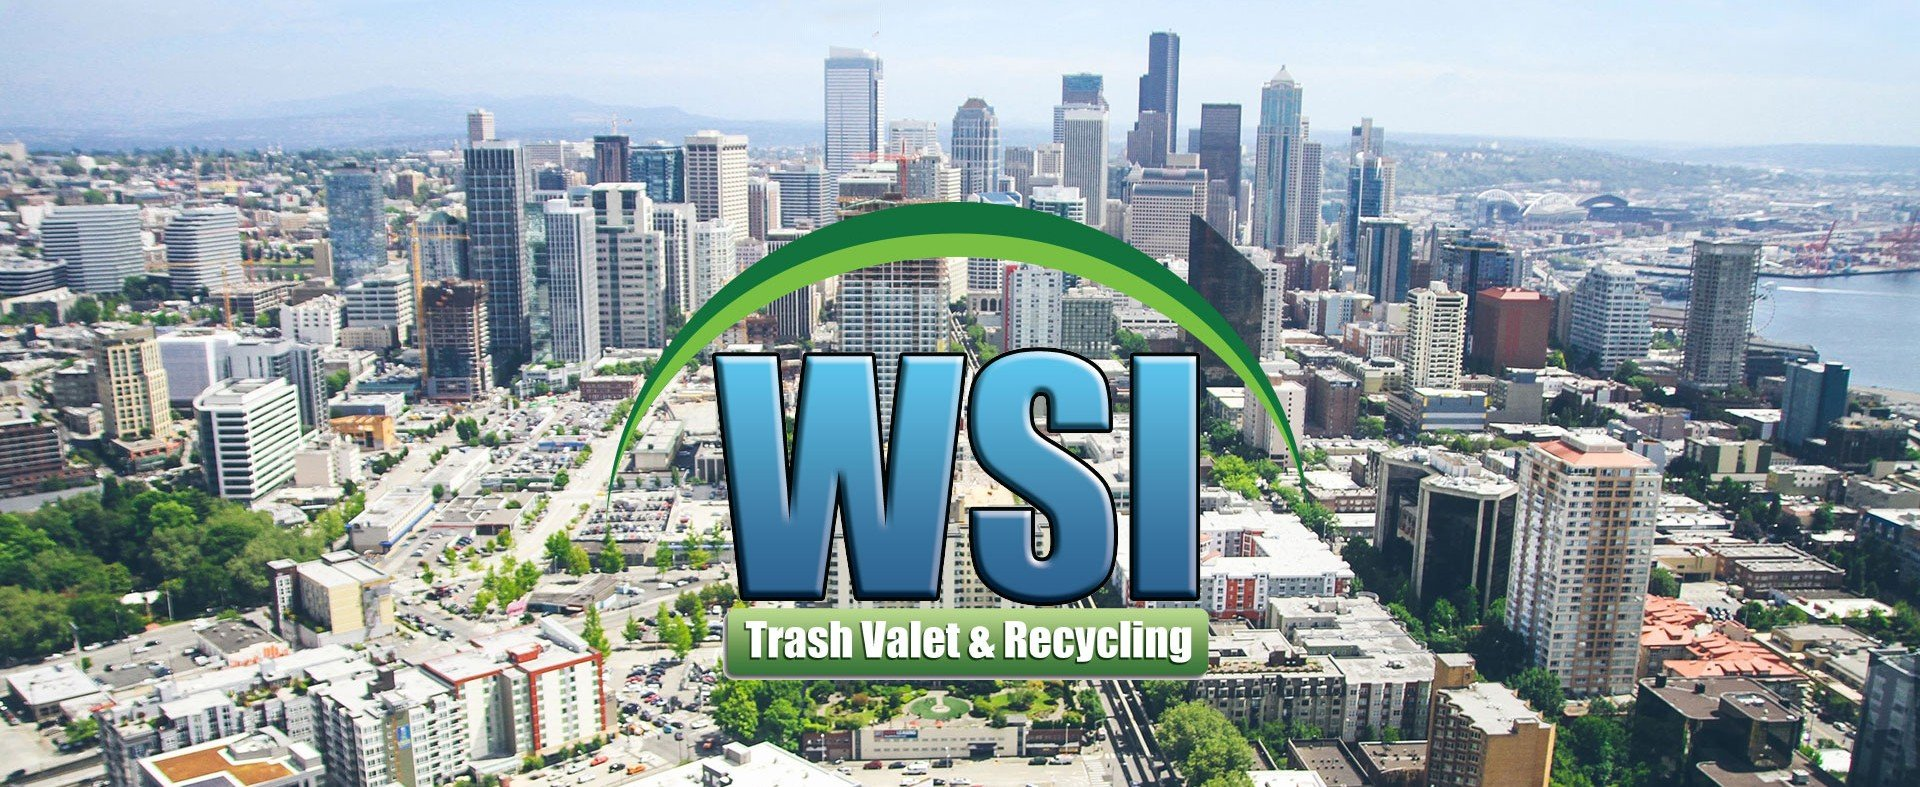 WSI trash valet & recycling logo floating over a panoramic city image